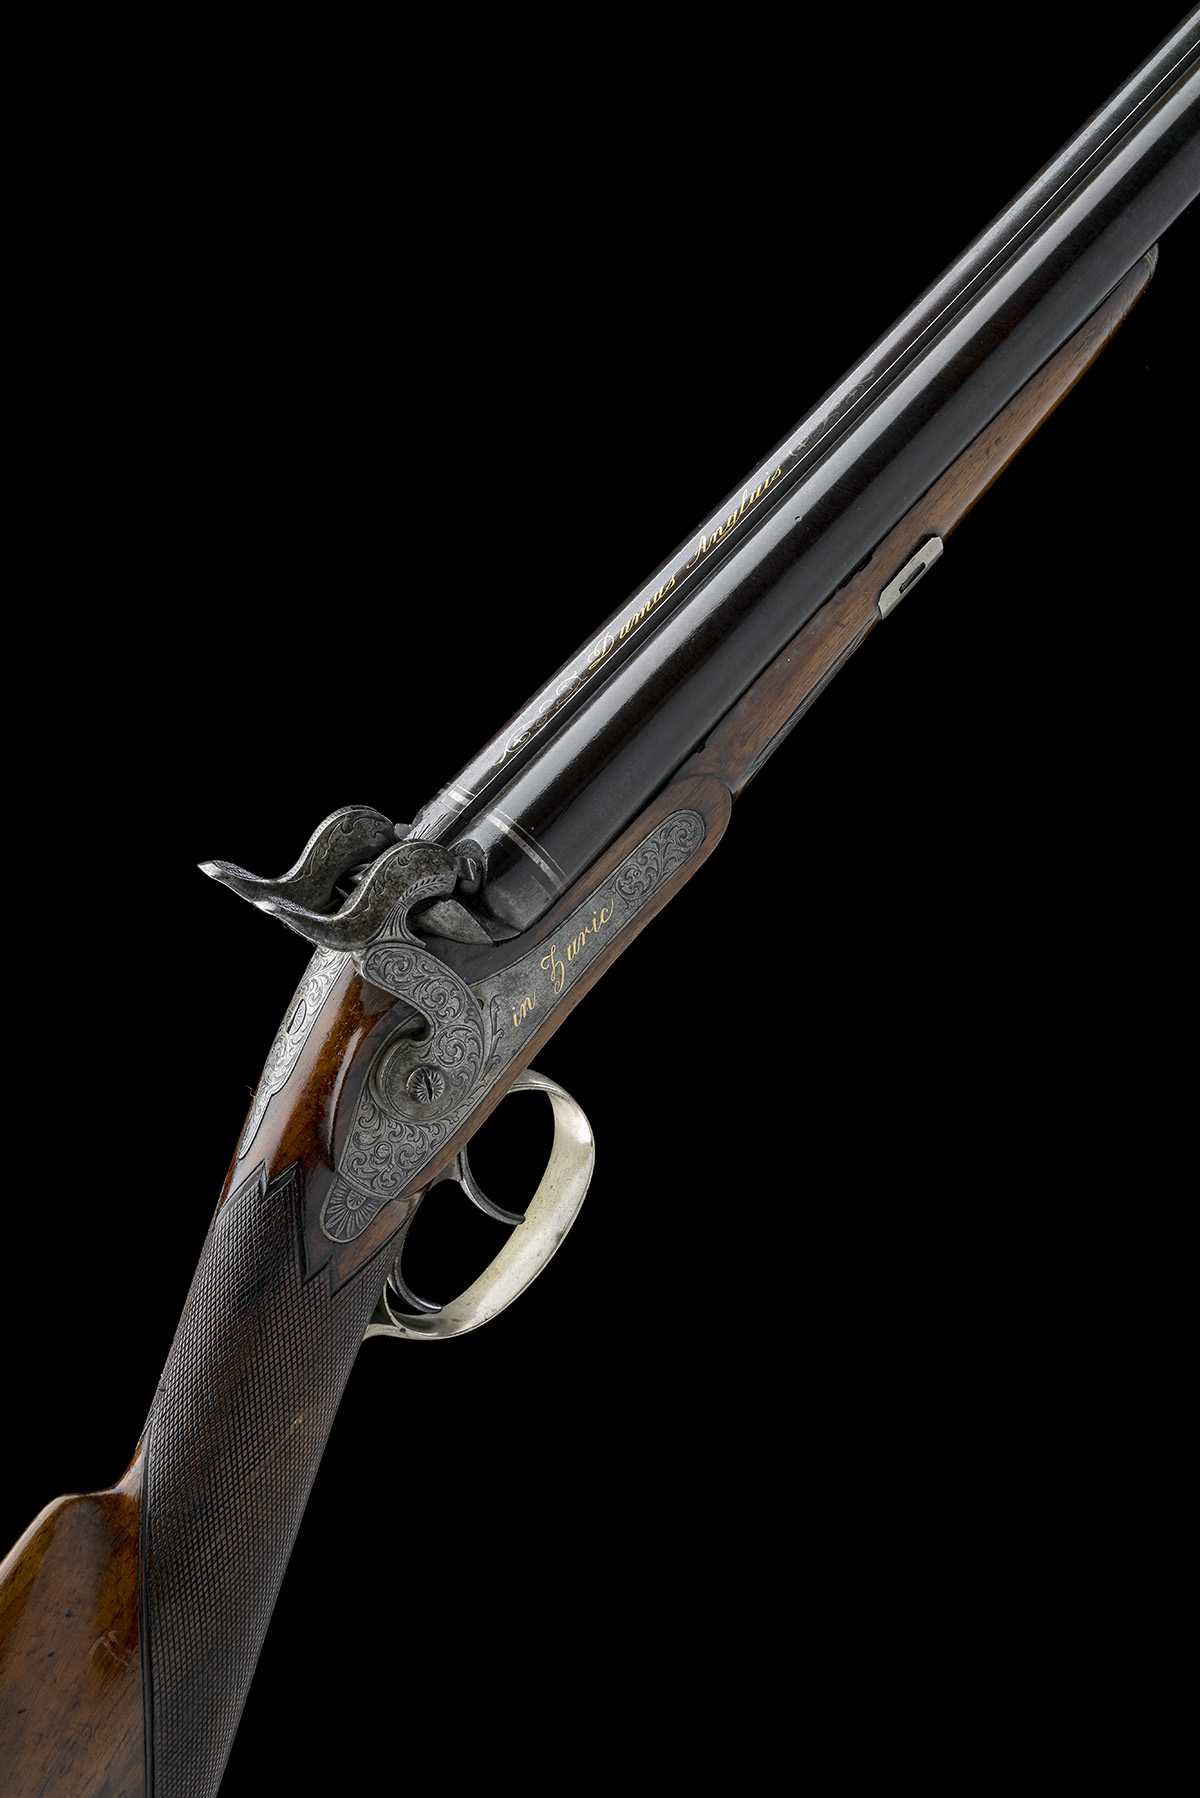 J. TAUBER, ZURICH A 14-BORE PERCUSSION DOUBLE-BARRELLED SPORTING-GUN, no visible serial number,